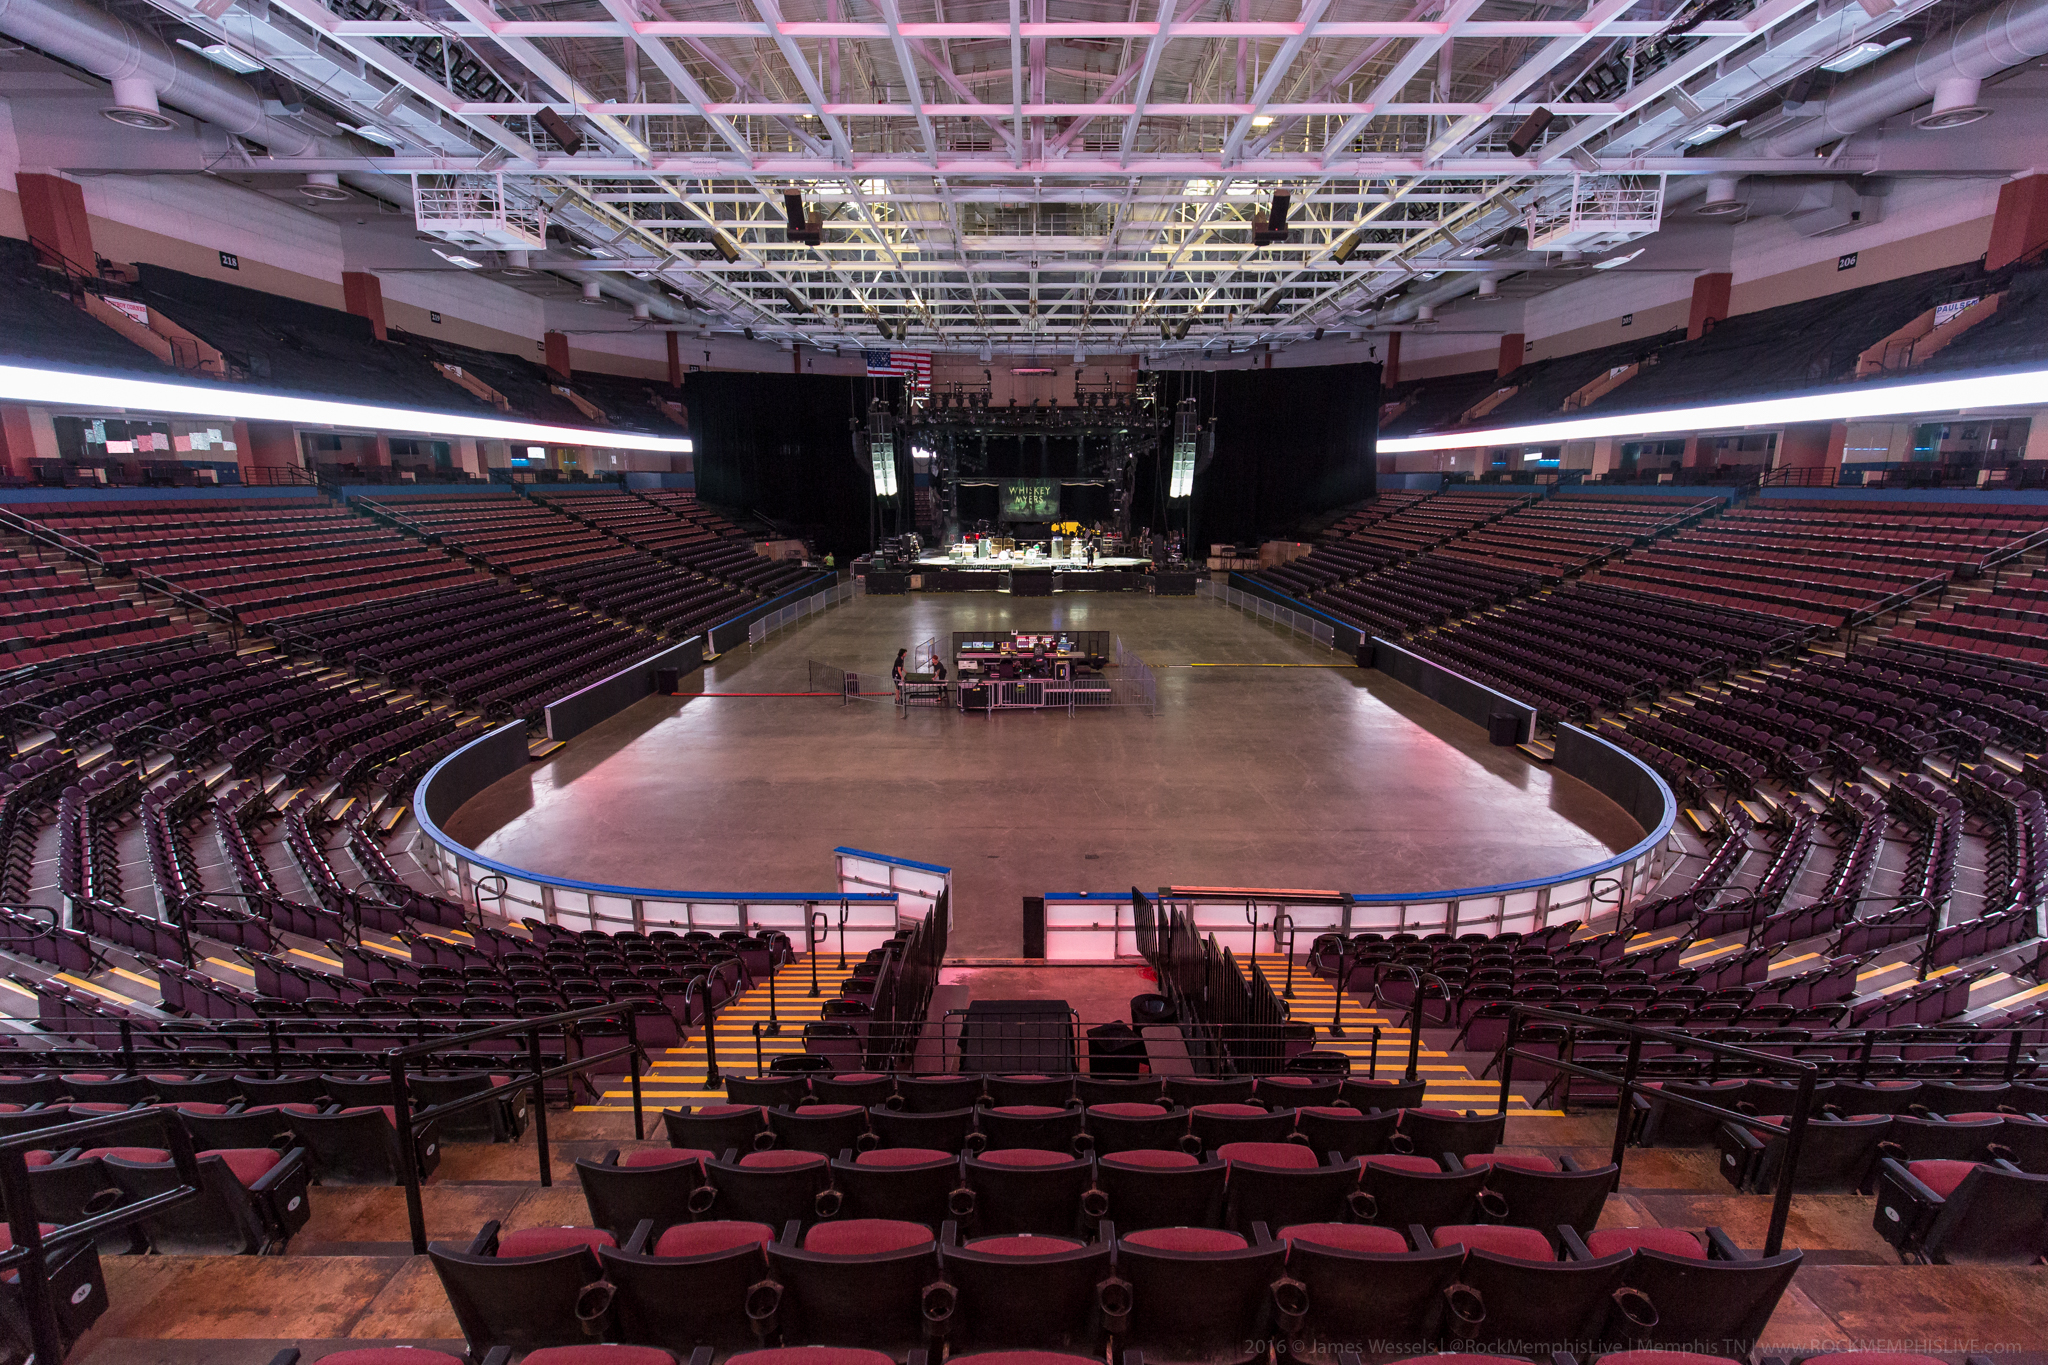 The Landers Center arena is a multi use entertainment venue Capacities and seating configuration will be customized for your event